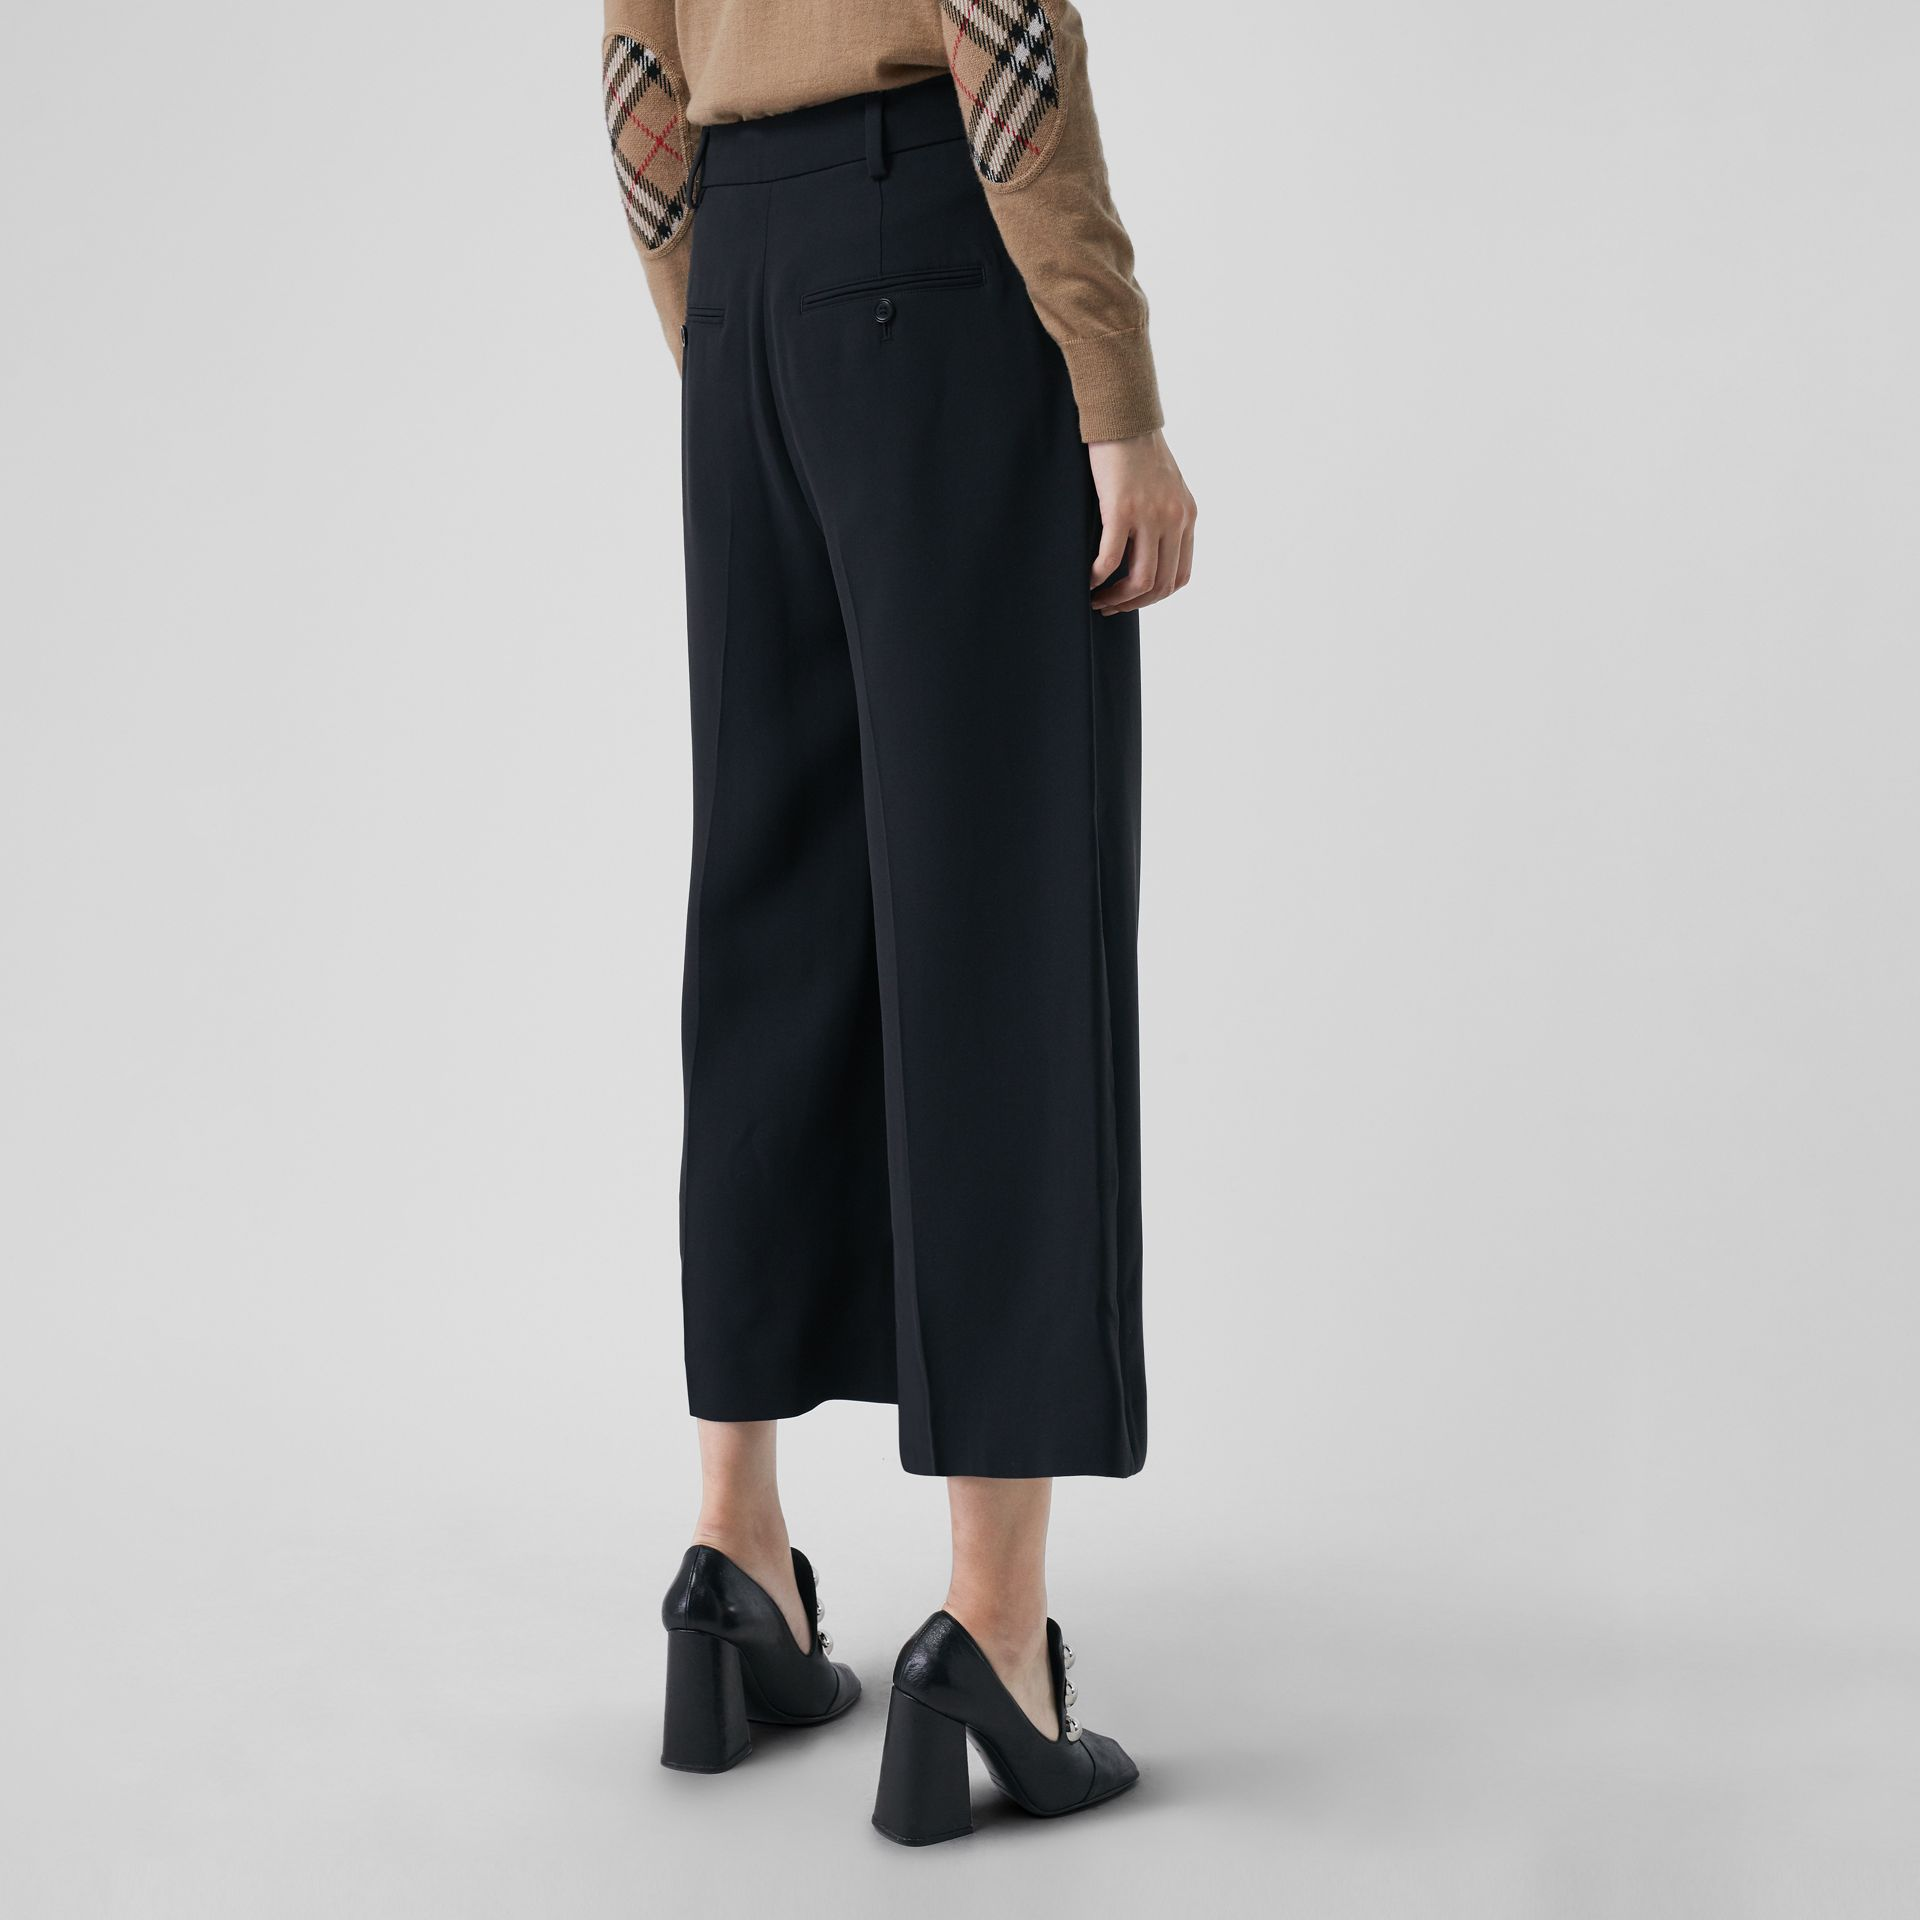 Silk Wool Tailored Culottes in Black - Women | Burberry - gallery image 2